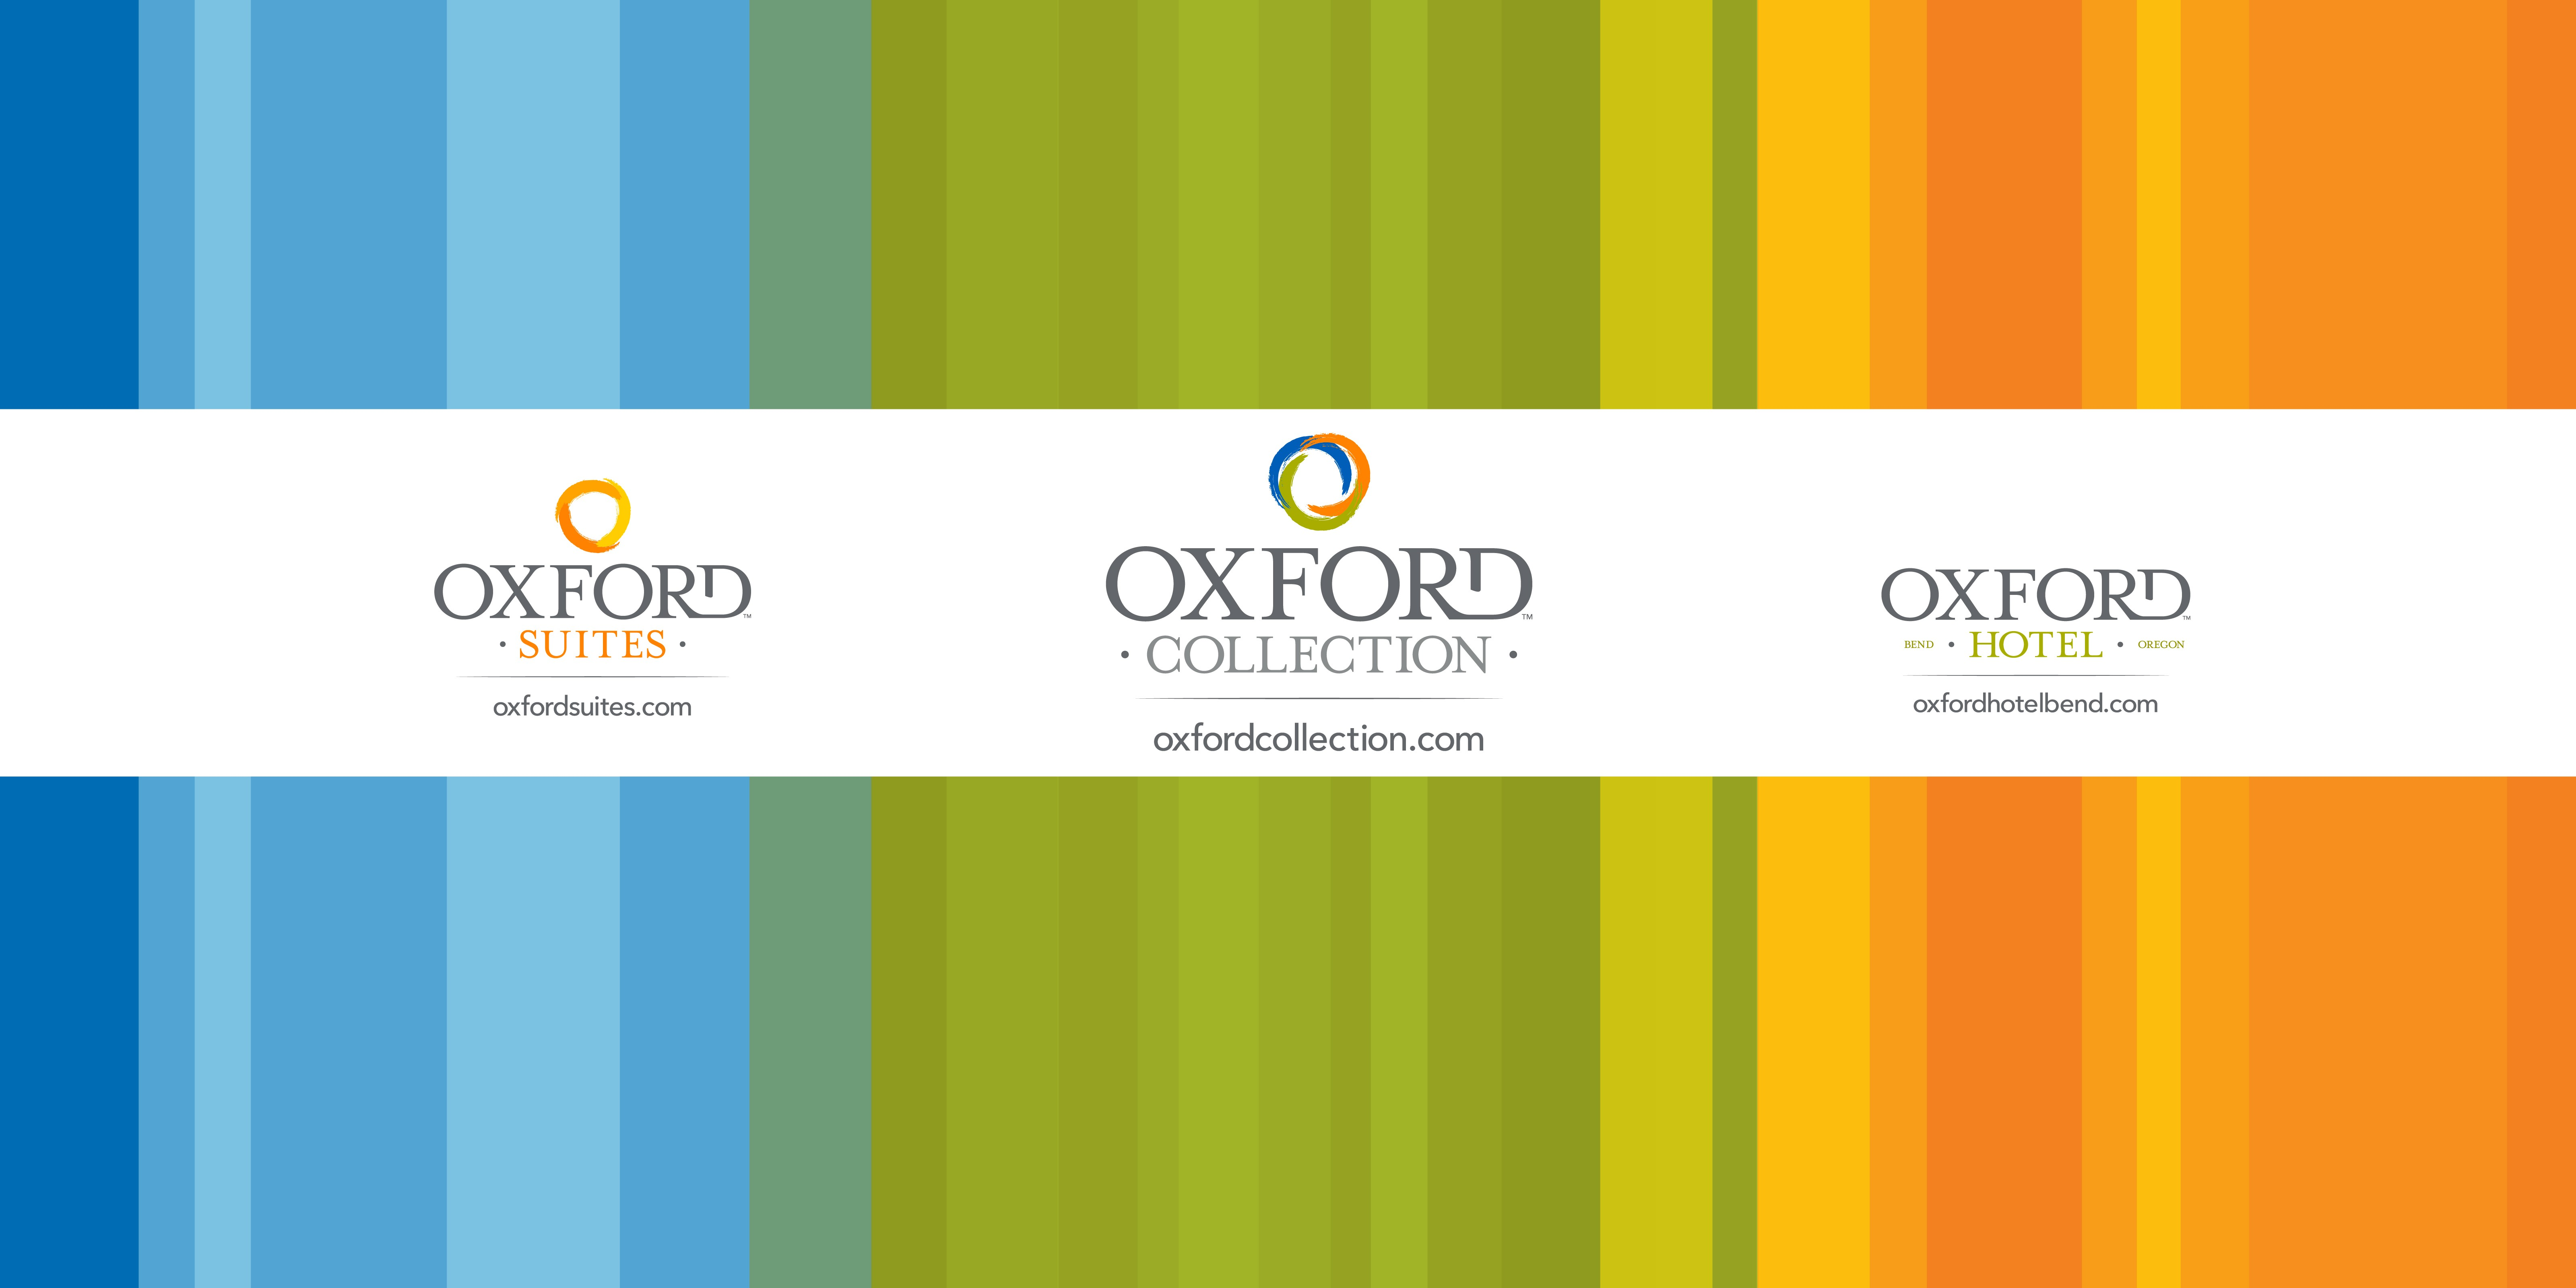 Speed dating oxford hotel